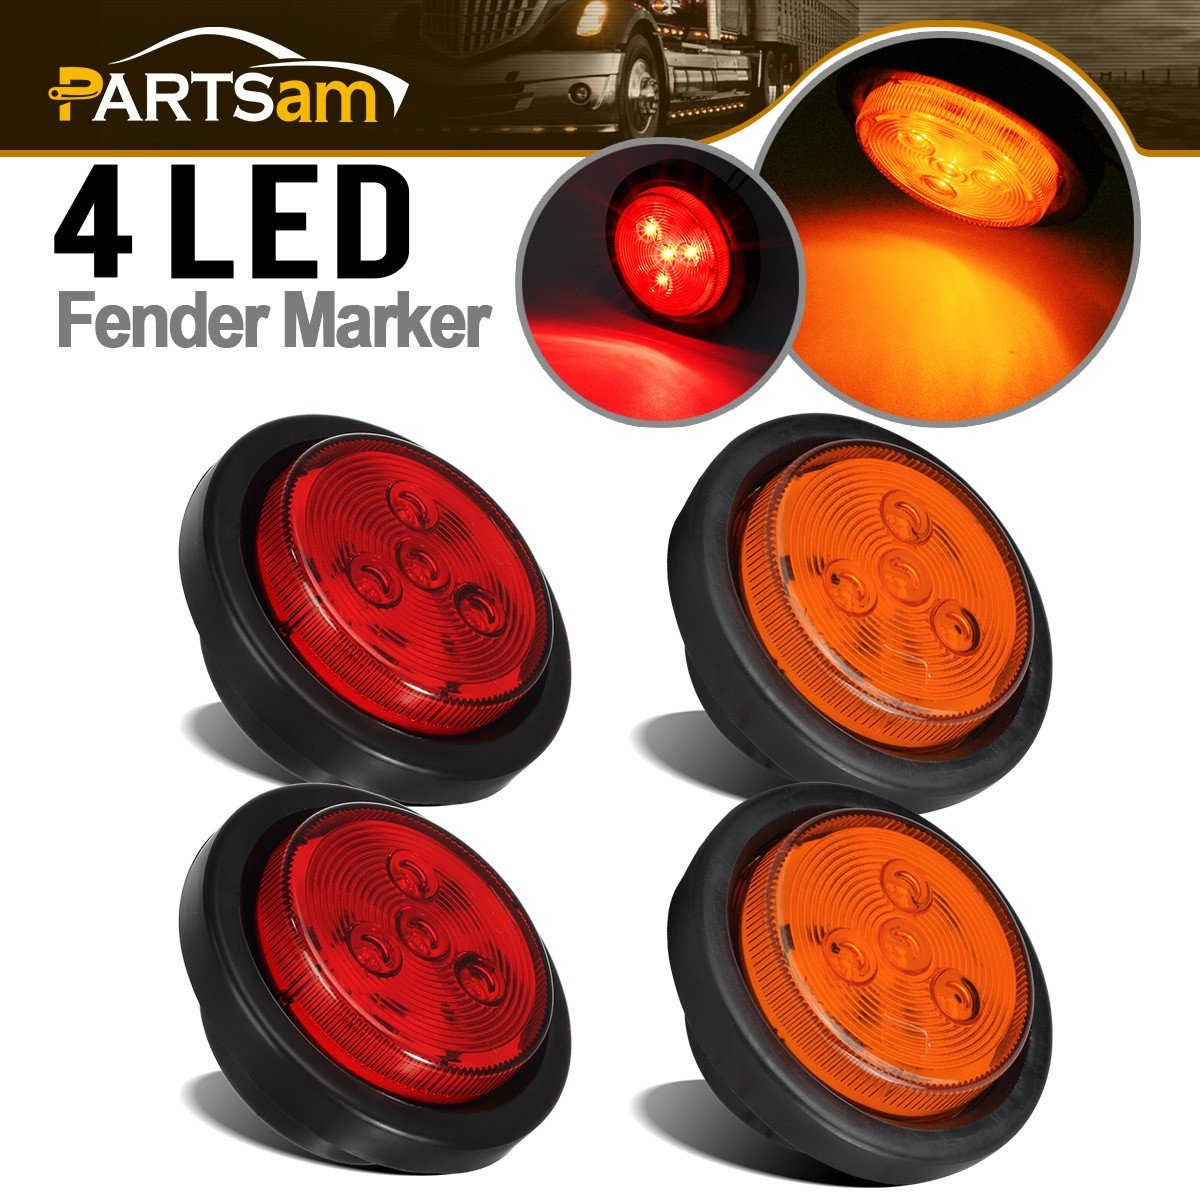 Partsam 2 Amber + 2 Red LED 2.5'in. Round Clearance/Side Marker Light Kit with Light Grommet & Wire Pigtail Truck Trailer RV